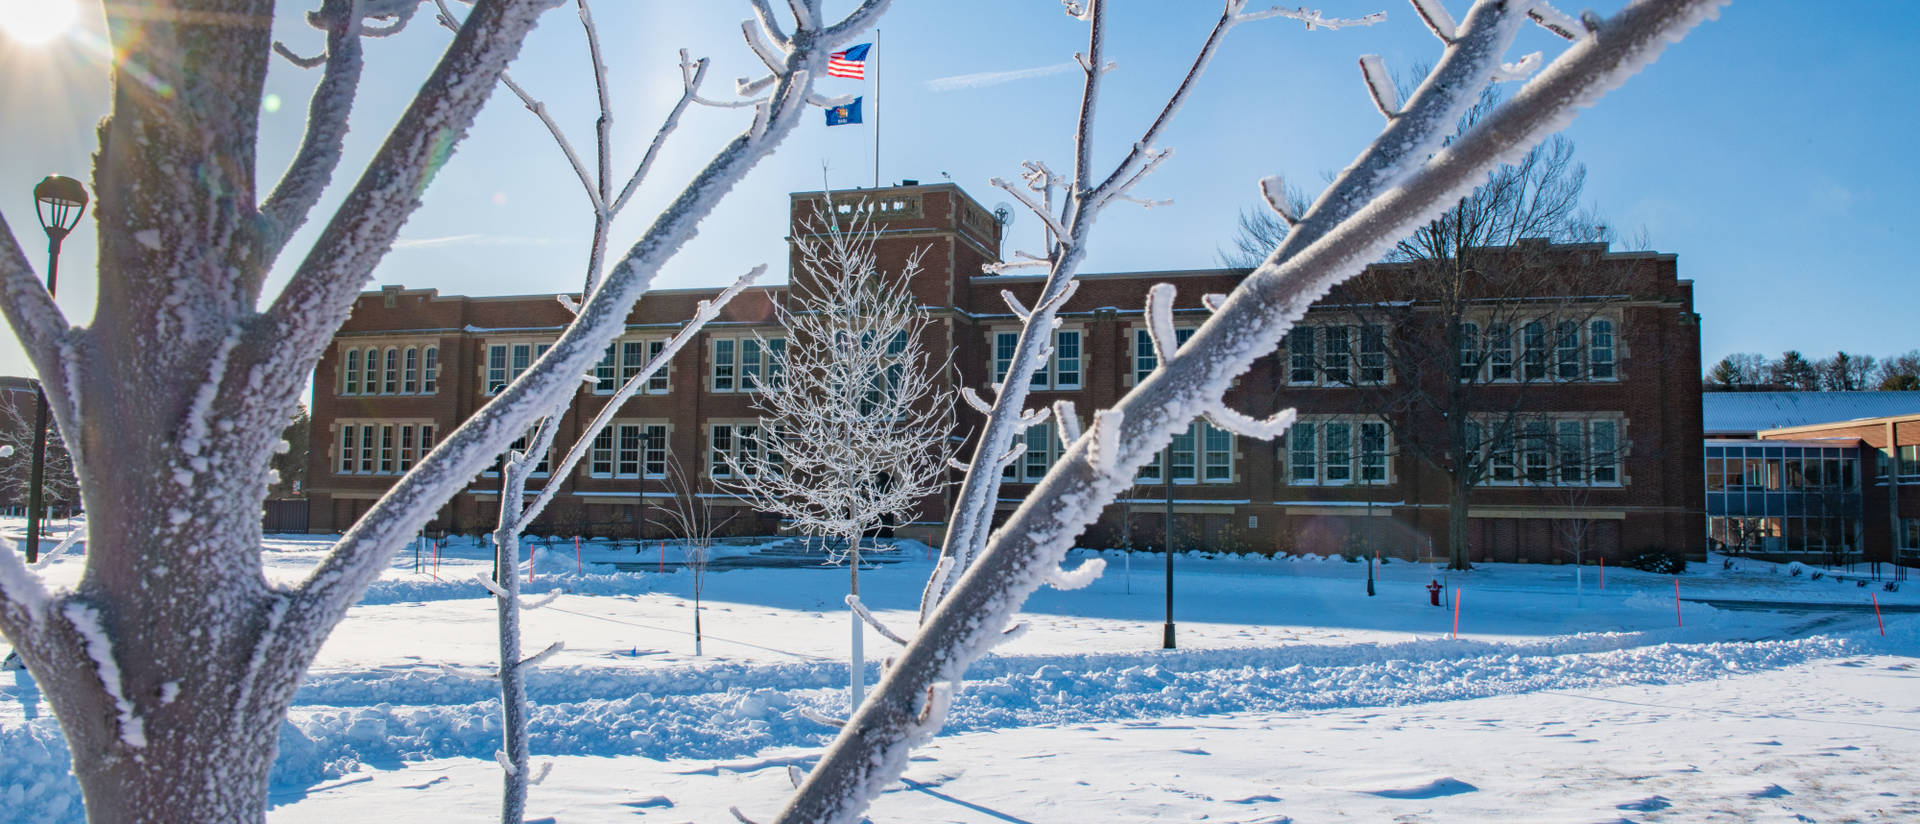 Schofield Hall in winter